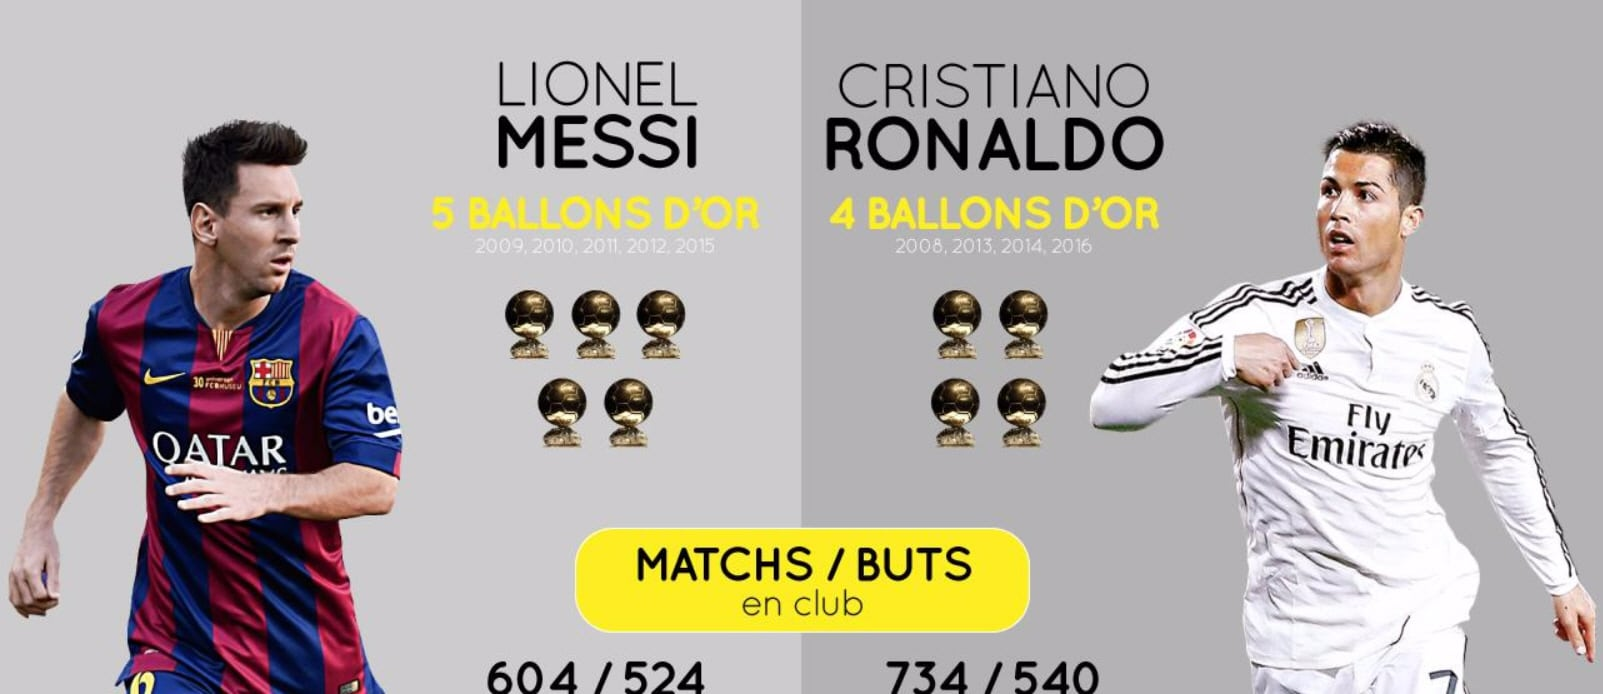 messi-vs-ronaldo-ballon-d-or-2017